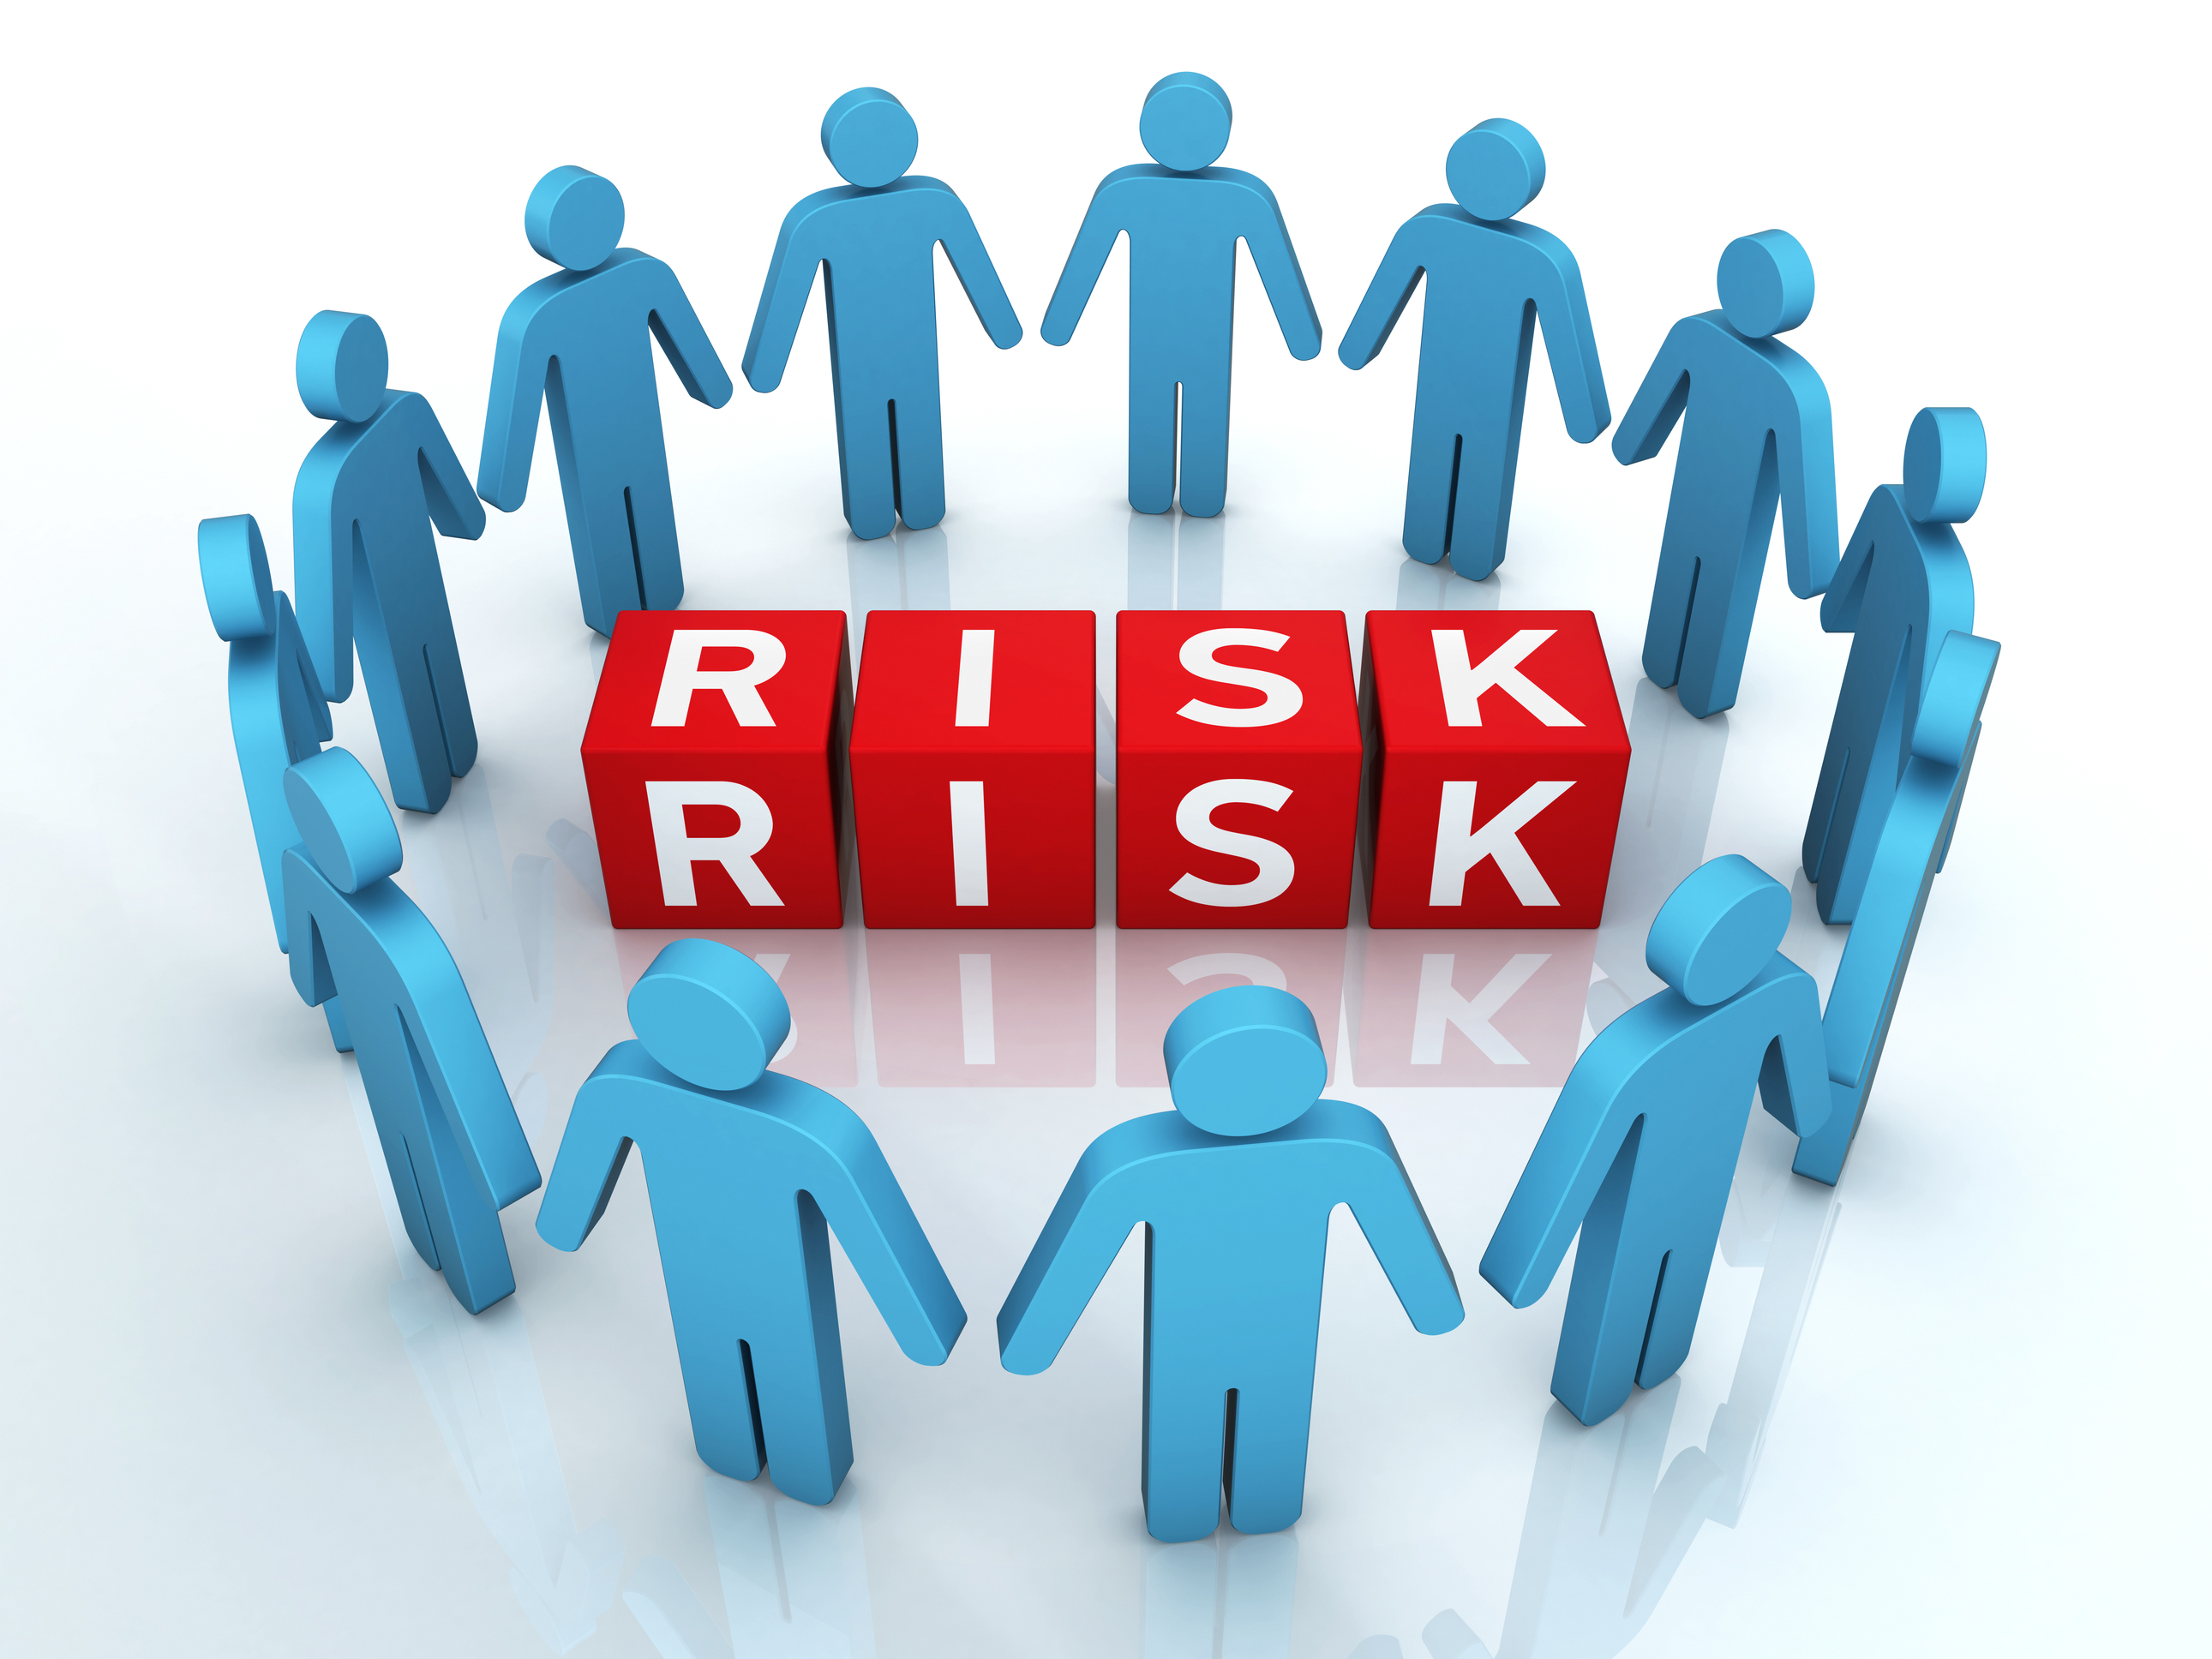 Few Easy Steps to Risk Management